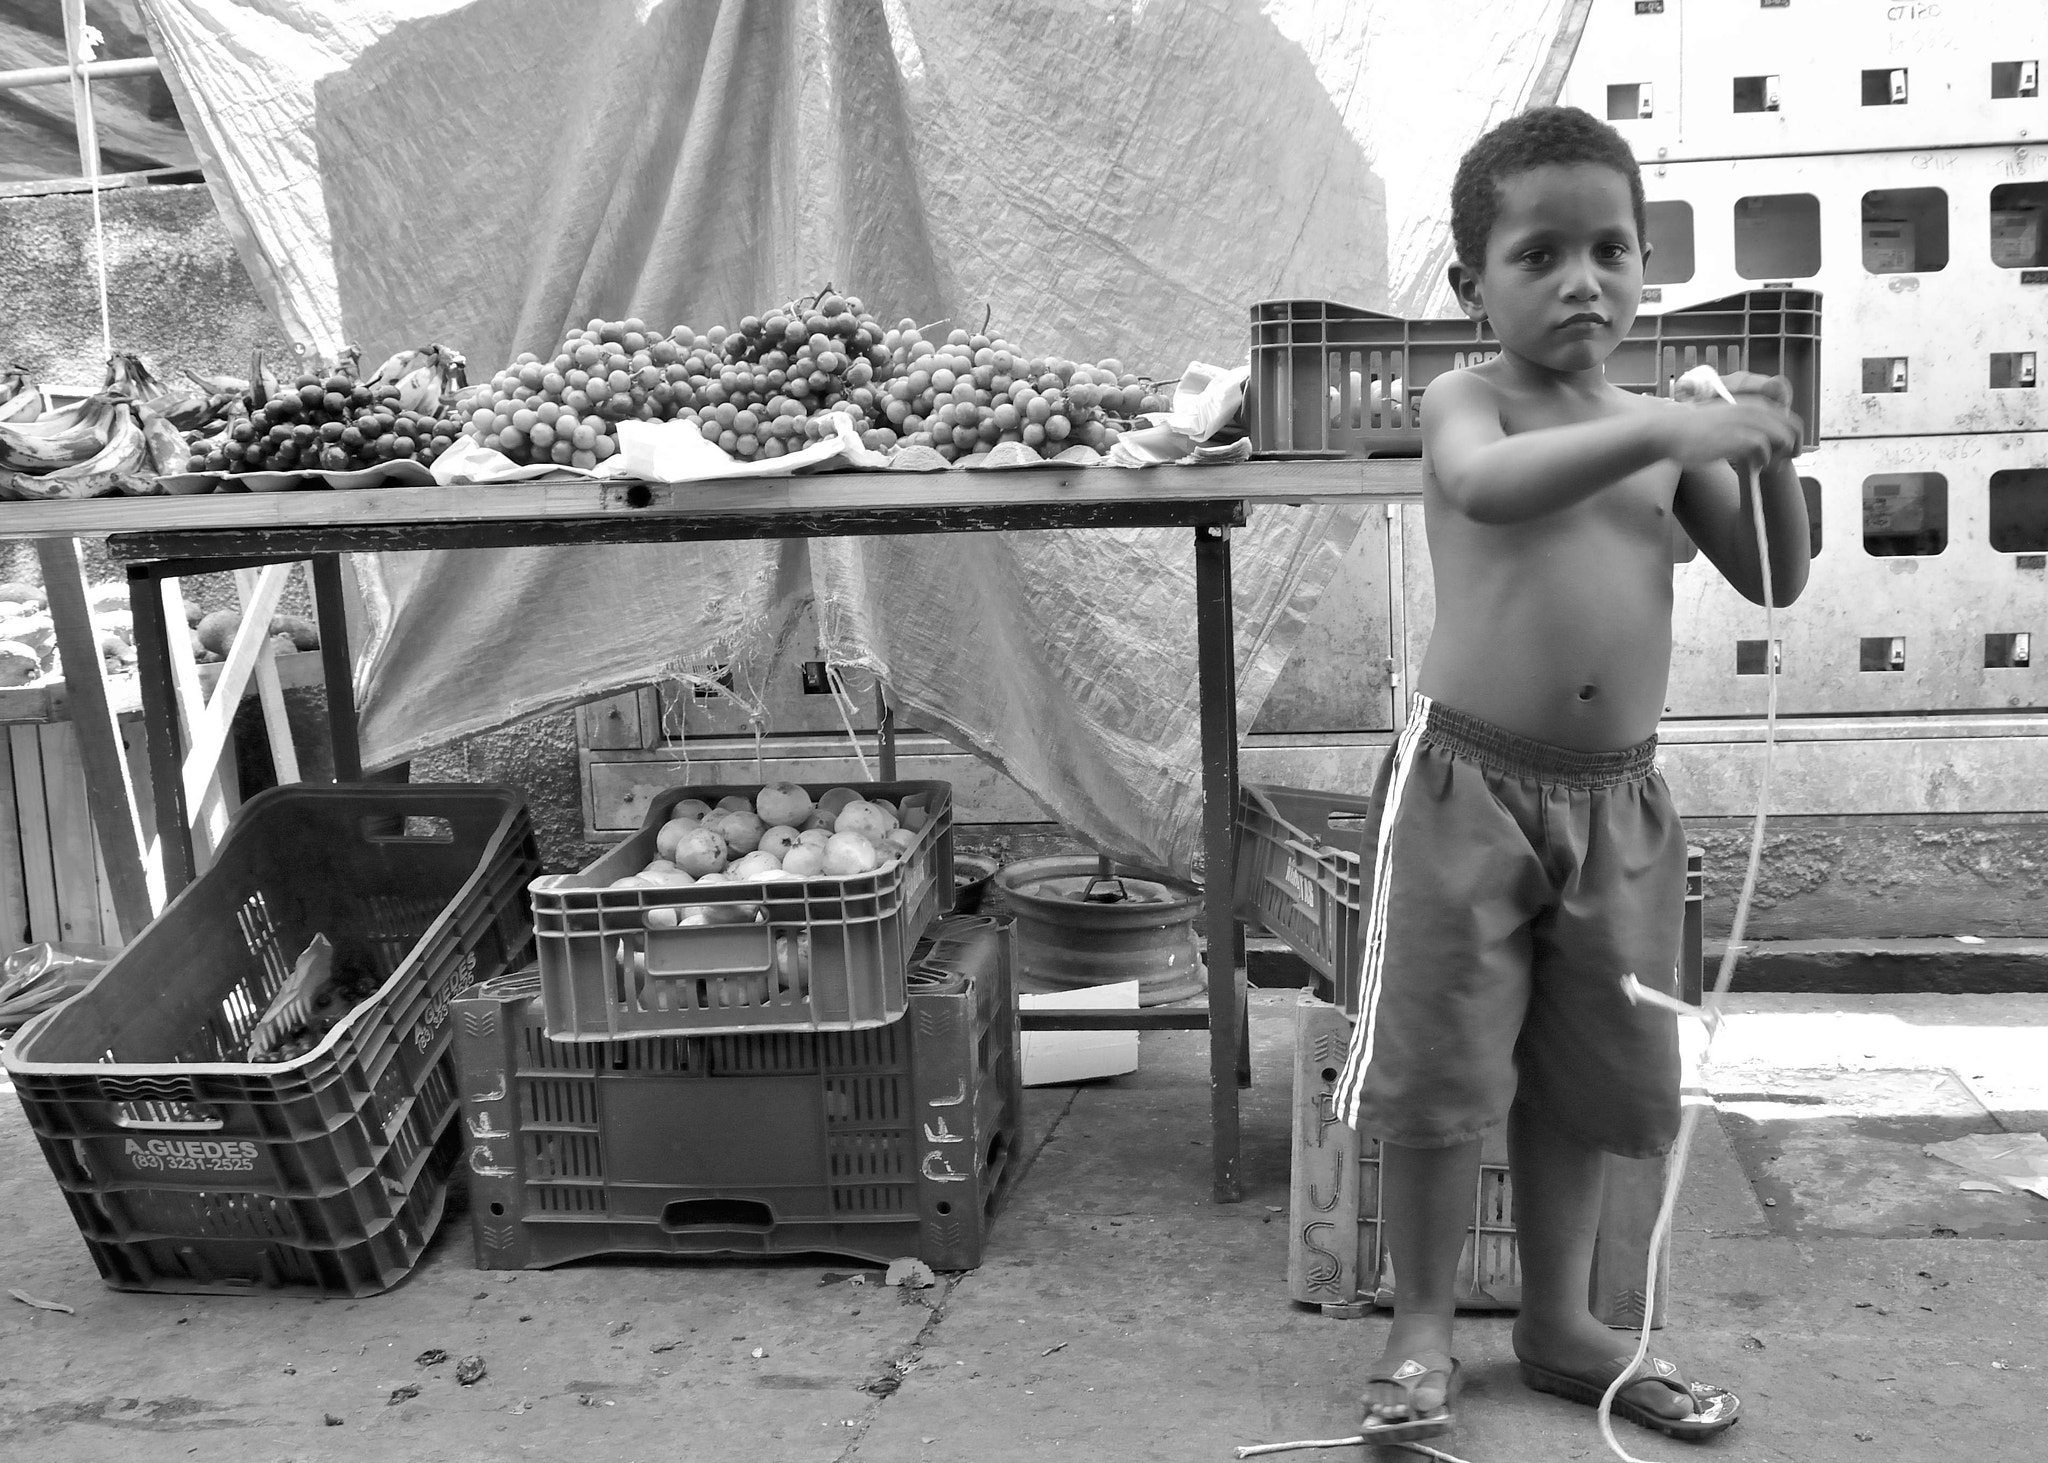 Photograph kid at the market by Helvio Silva on 500px